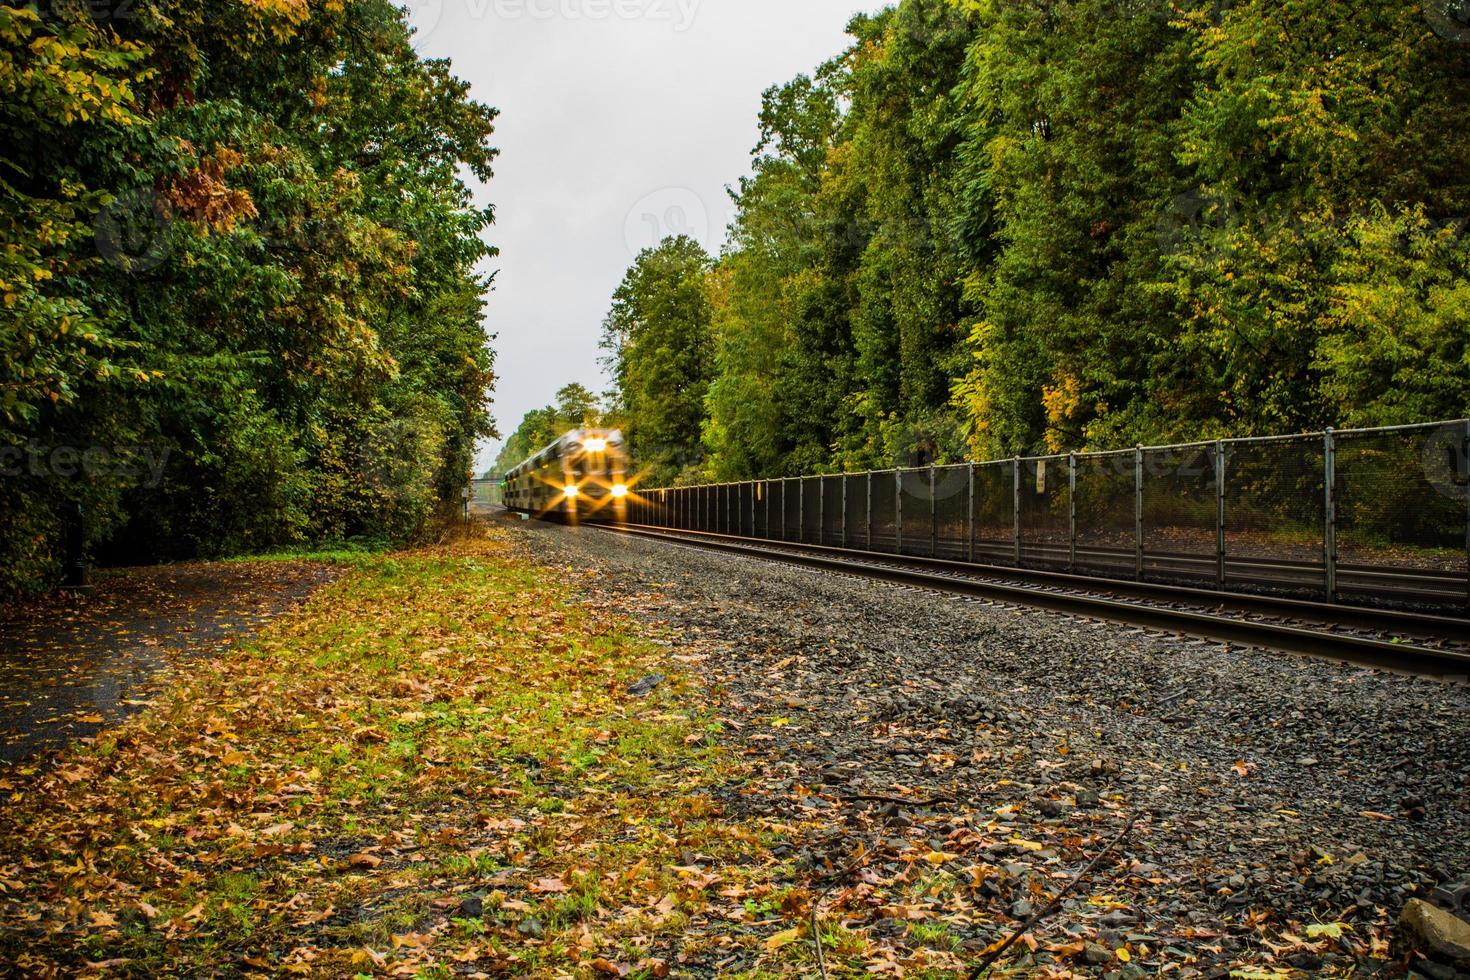 Moving train in the fall photo